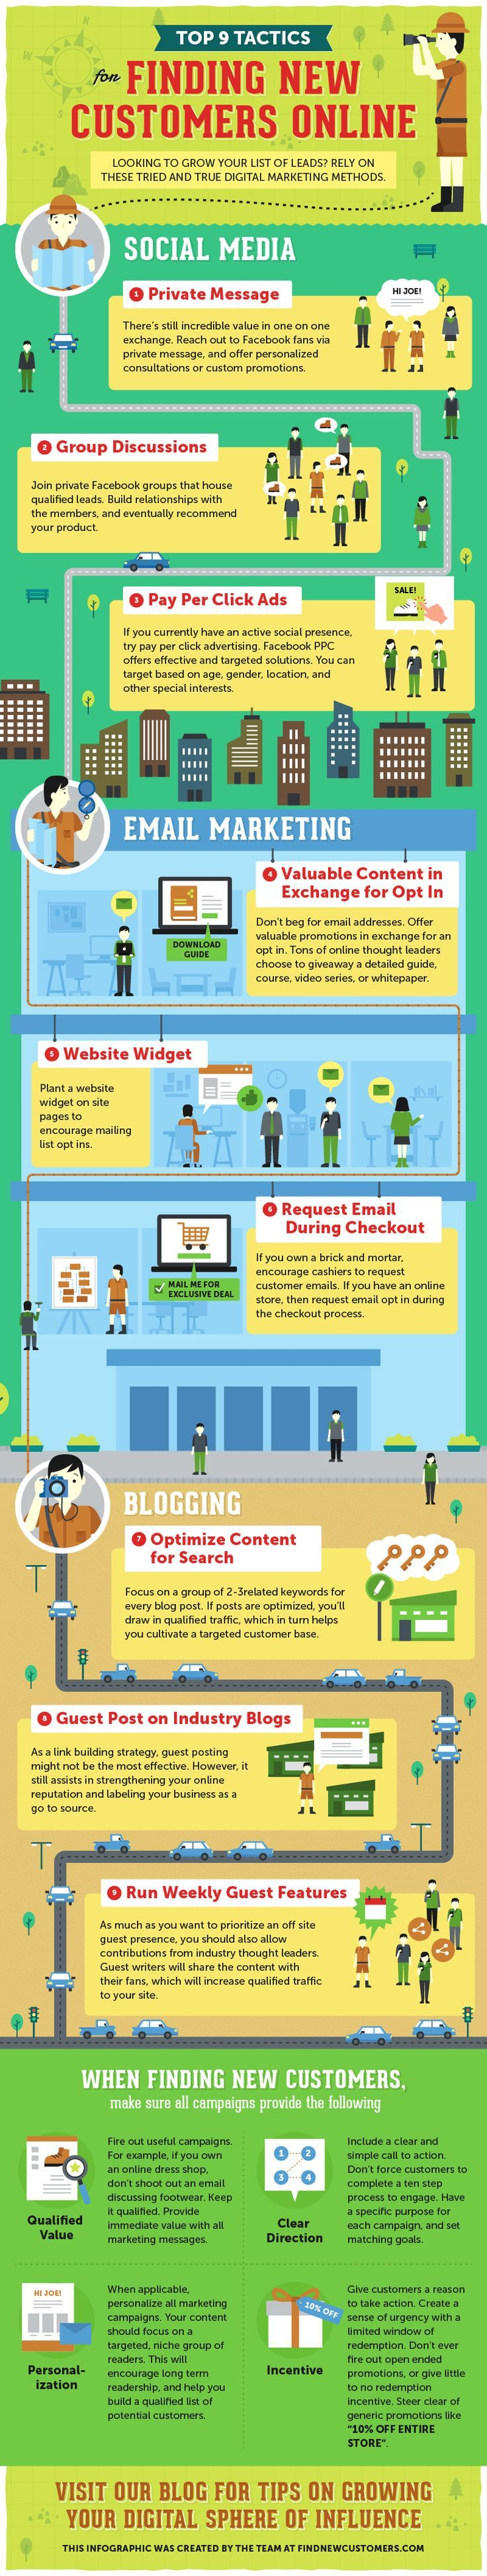 Top 9 Tips and Tricks for Finding New Customers Online - Infographic